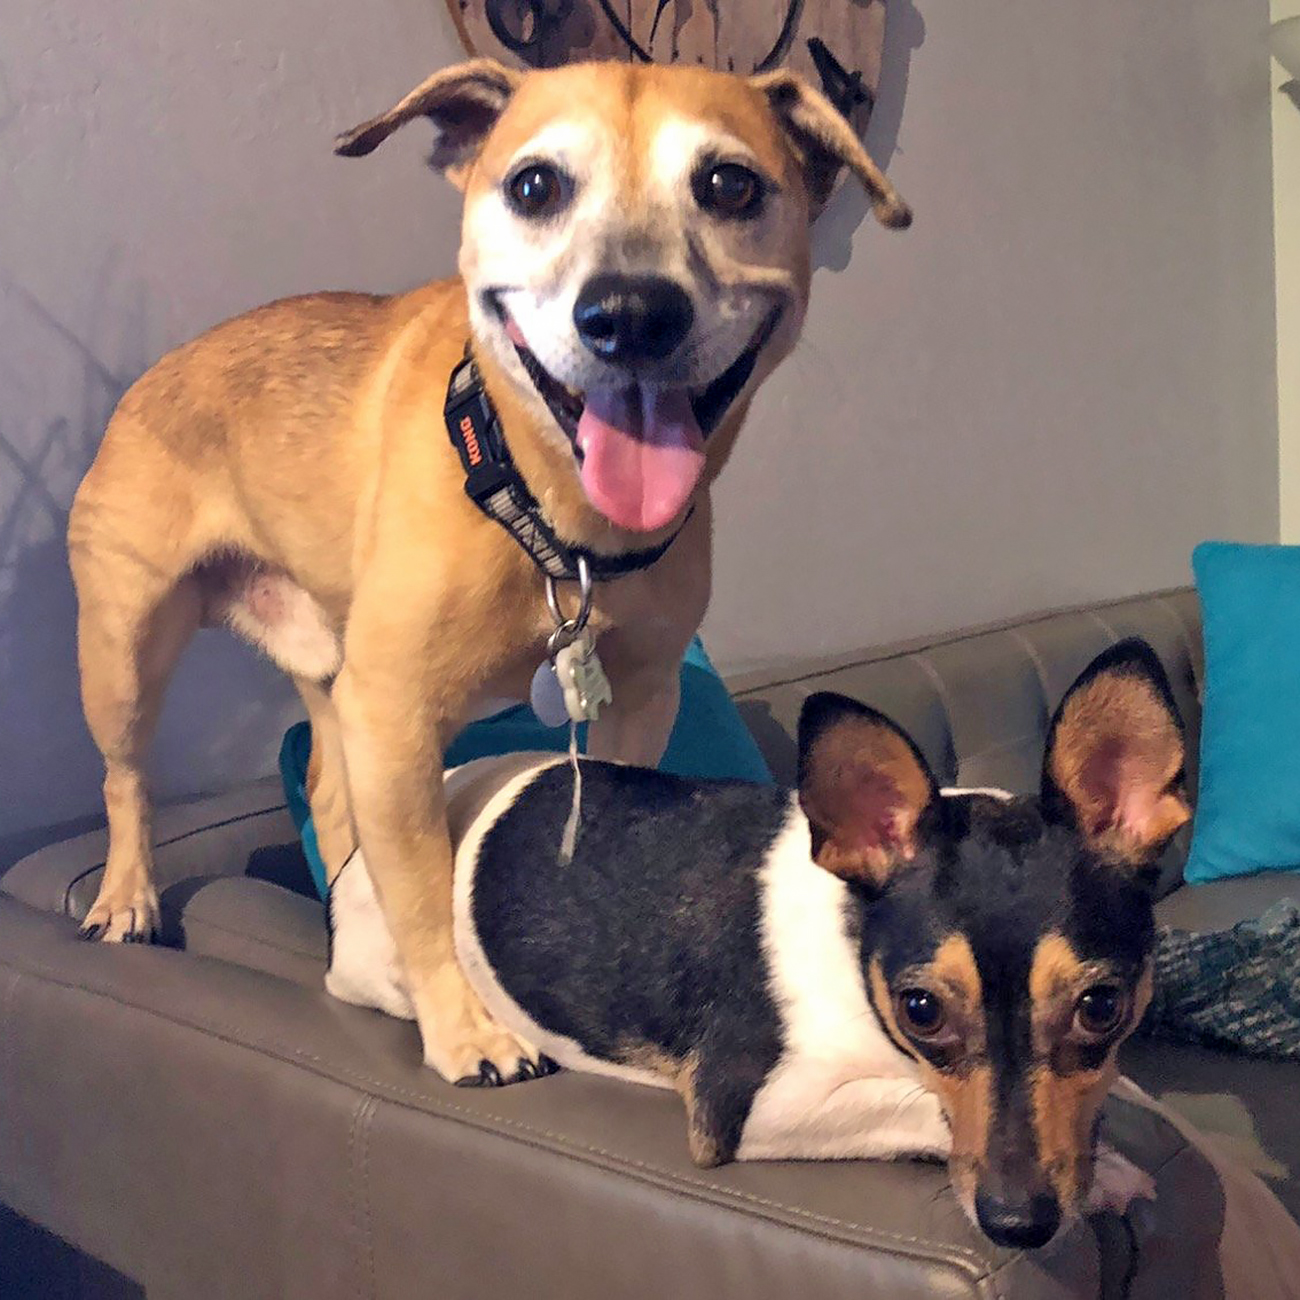 Small dog laws on couch arm while medium dog stands above him and smiles at camera